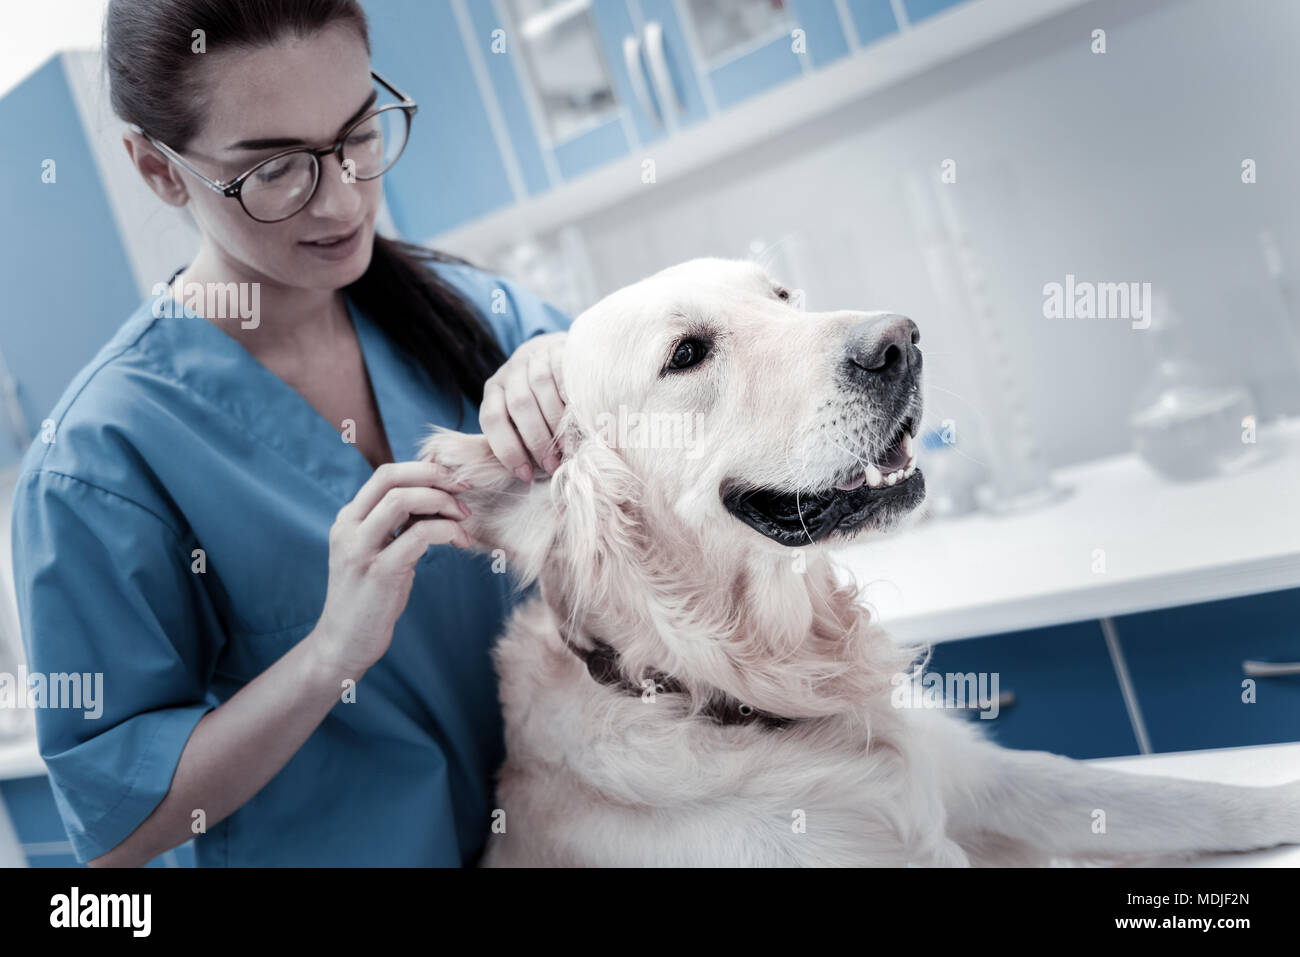 Nice young woman caring about the dog - Stock Image